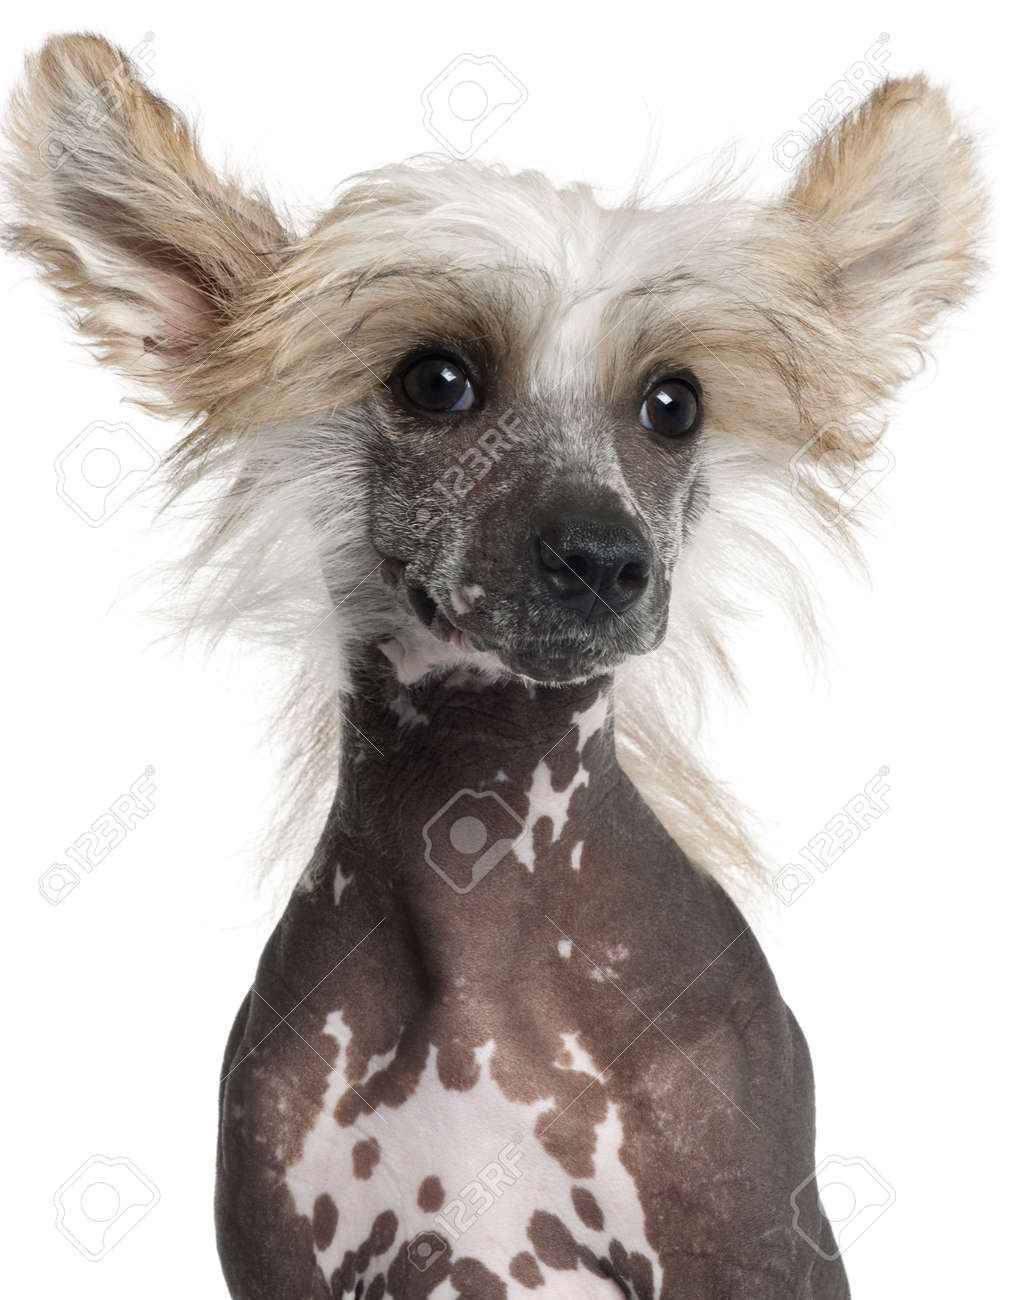 Chinese Crested 4 Months Close-up of Chinese Crested